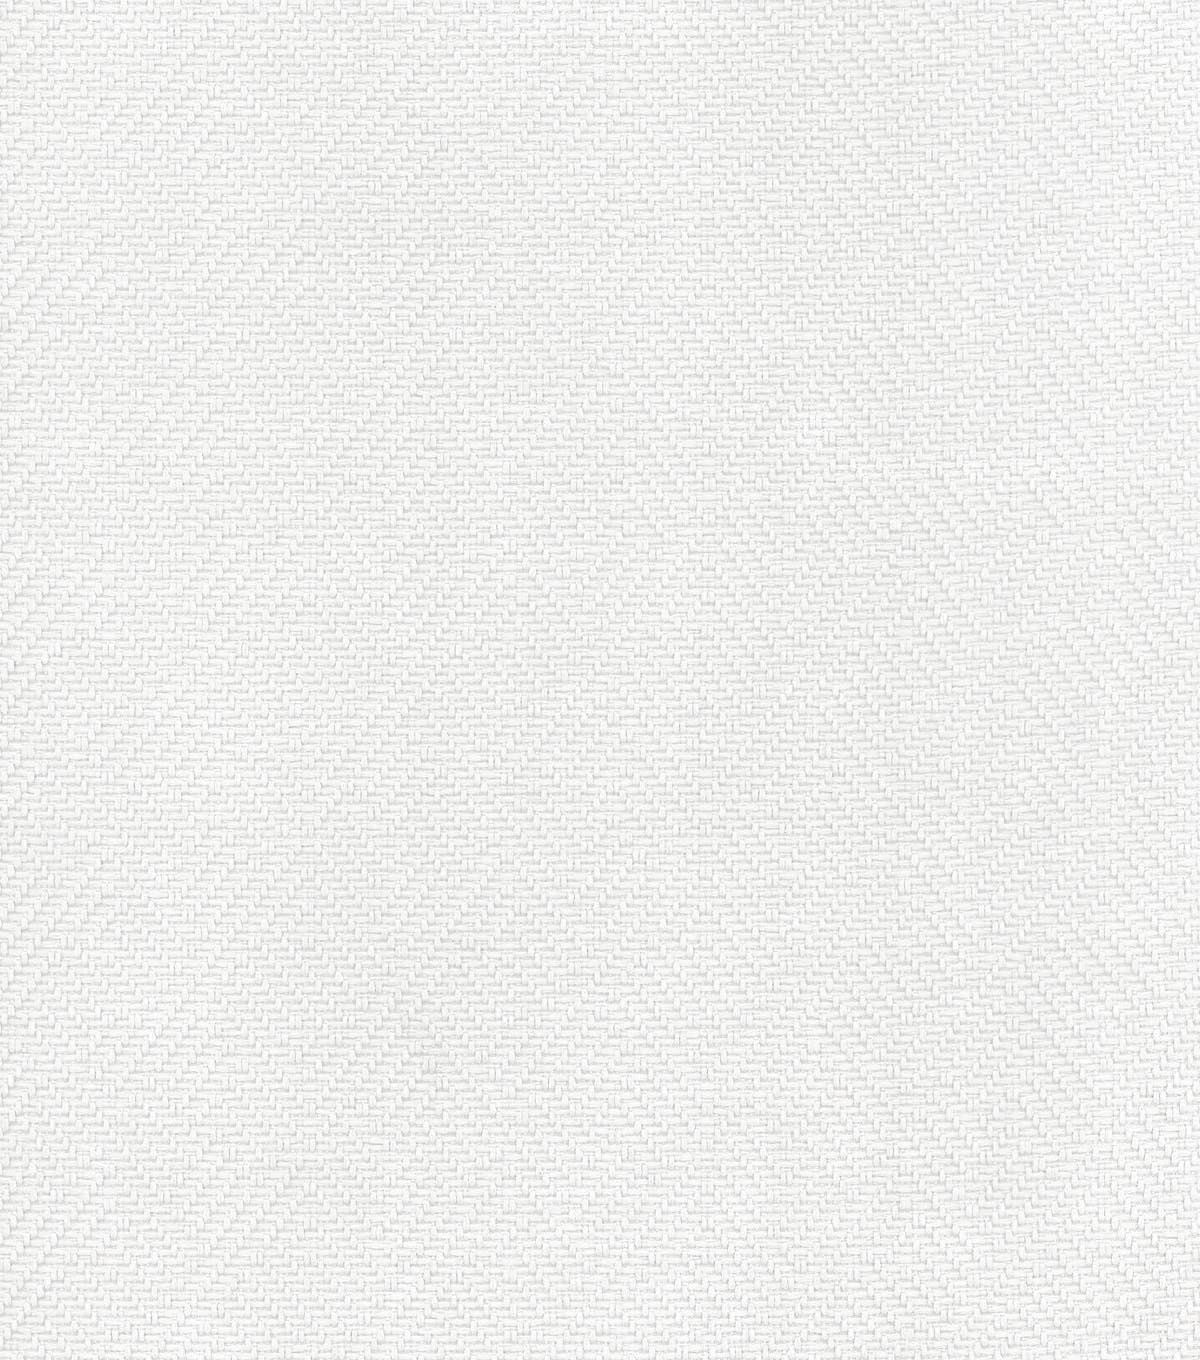 Home Decor 8\u0022x8\u0022 Swatch Fabric-PK Lifestyles Basketry Birch